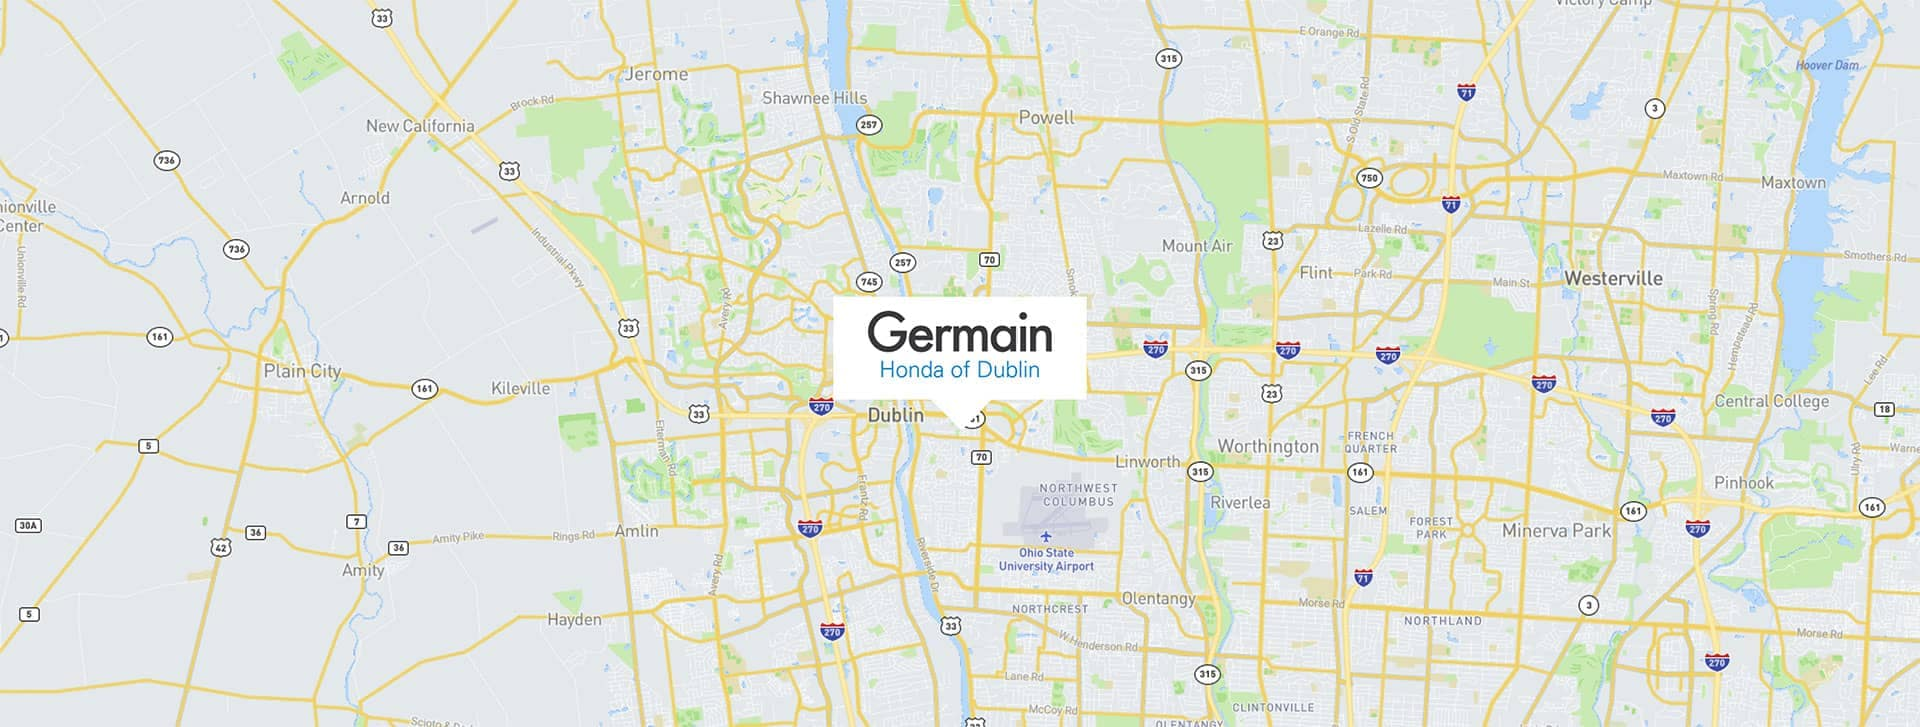 Germain Honda Dublin map